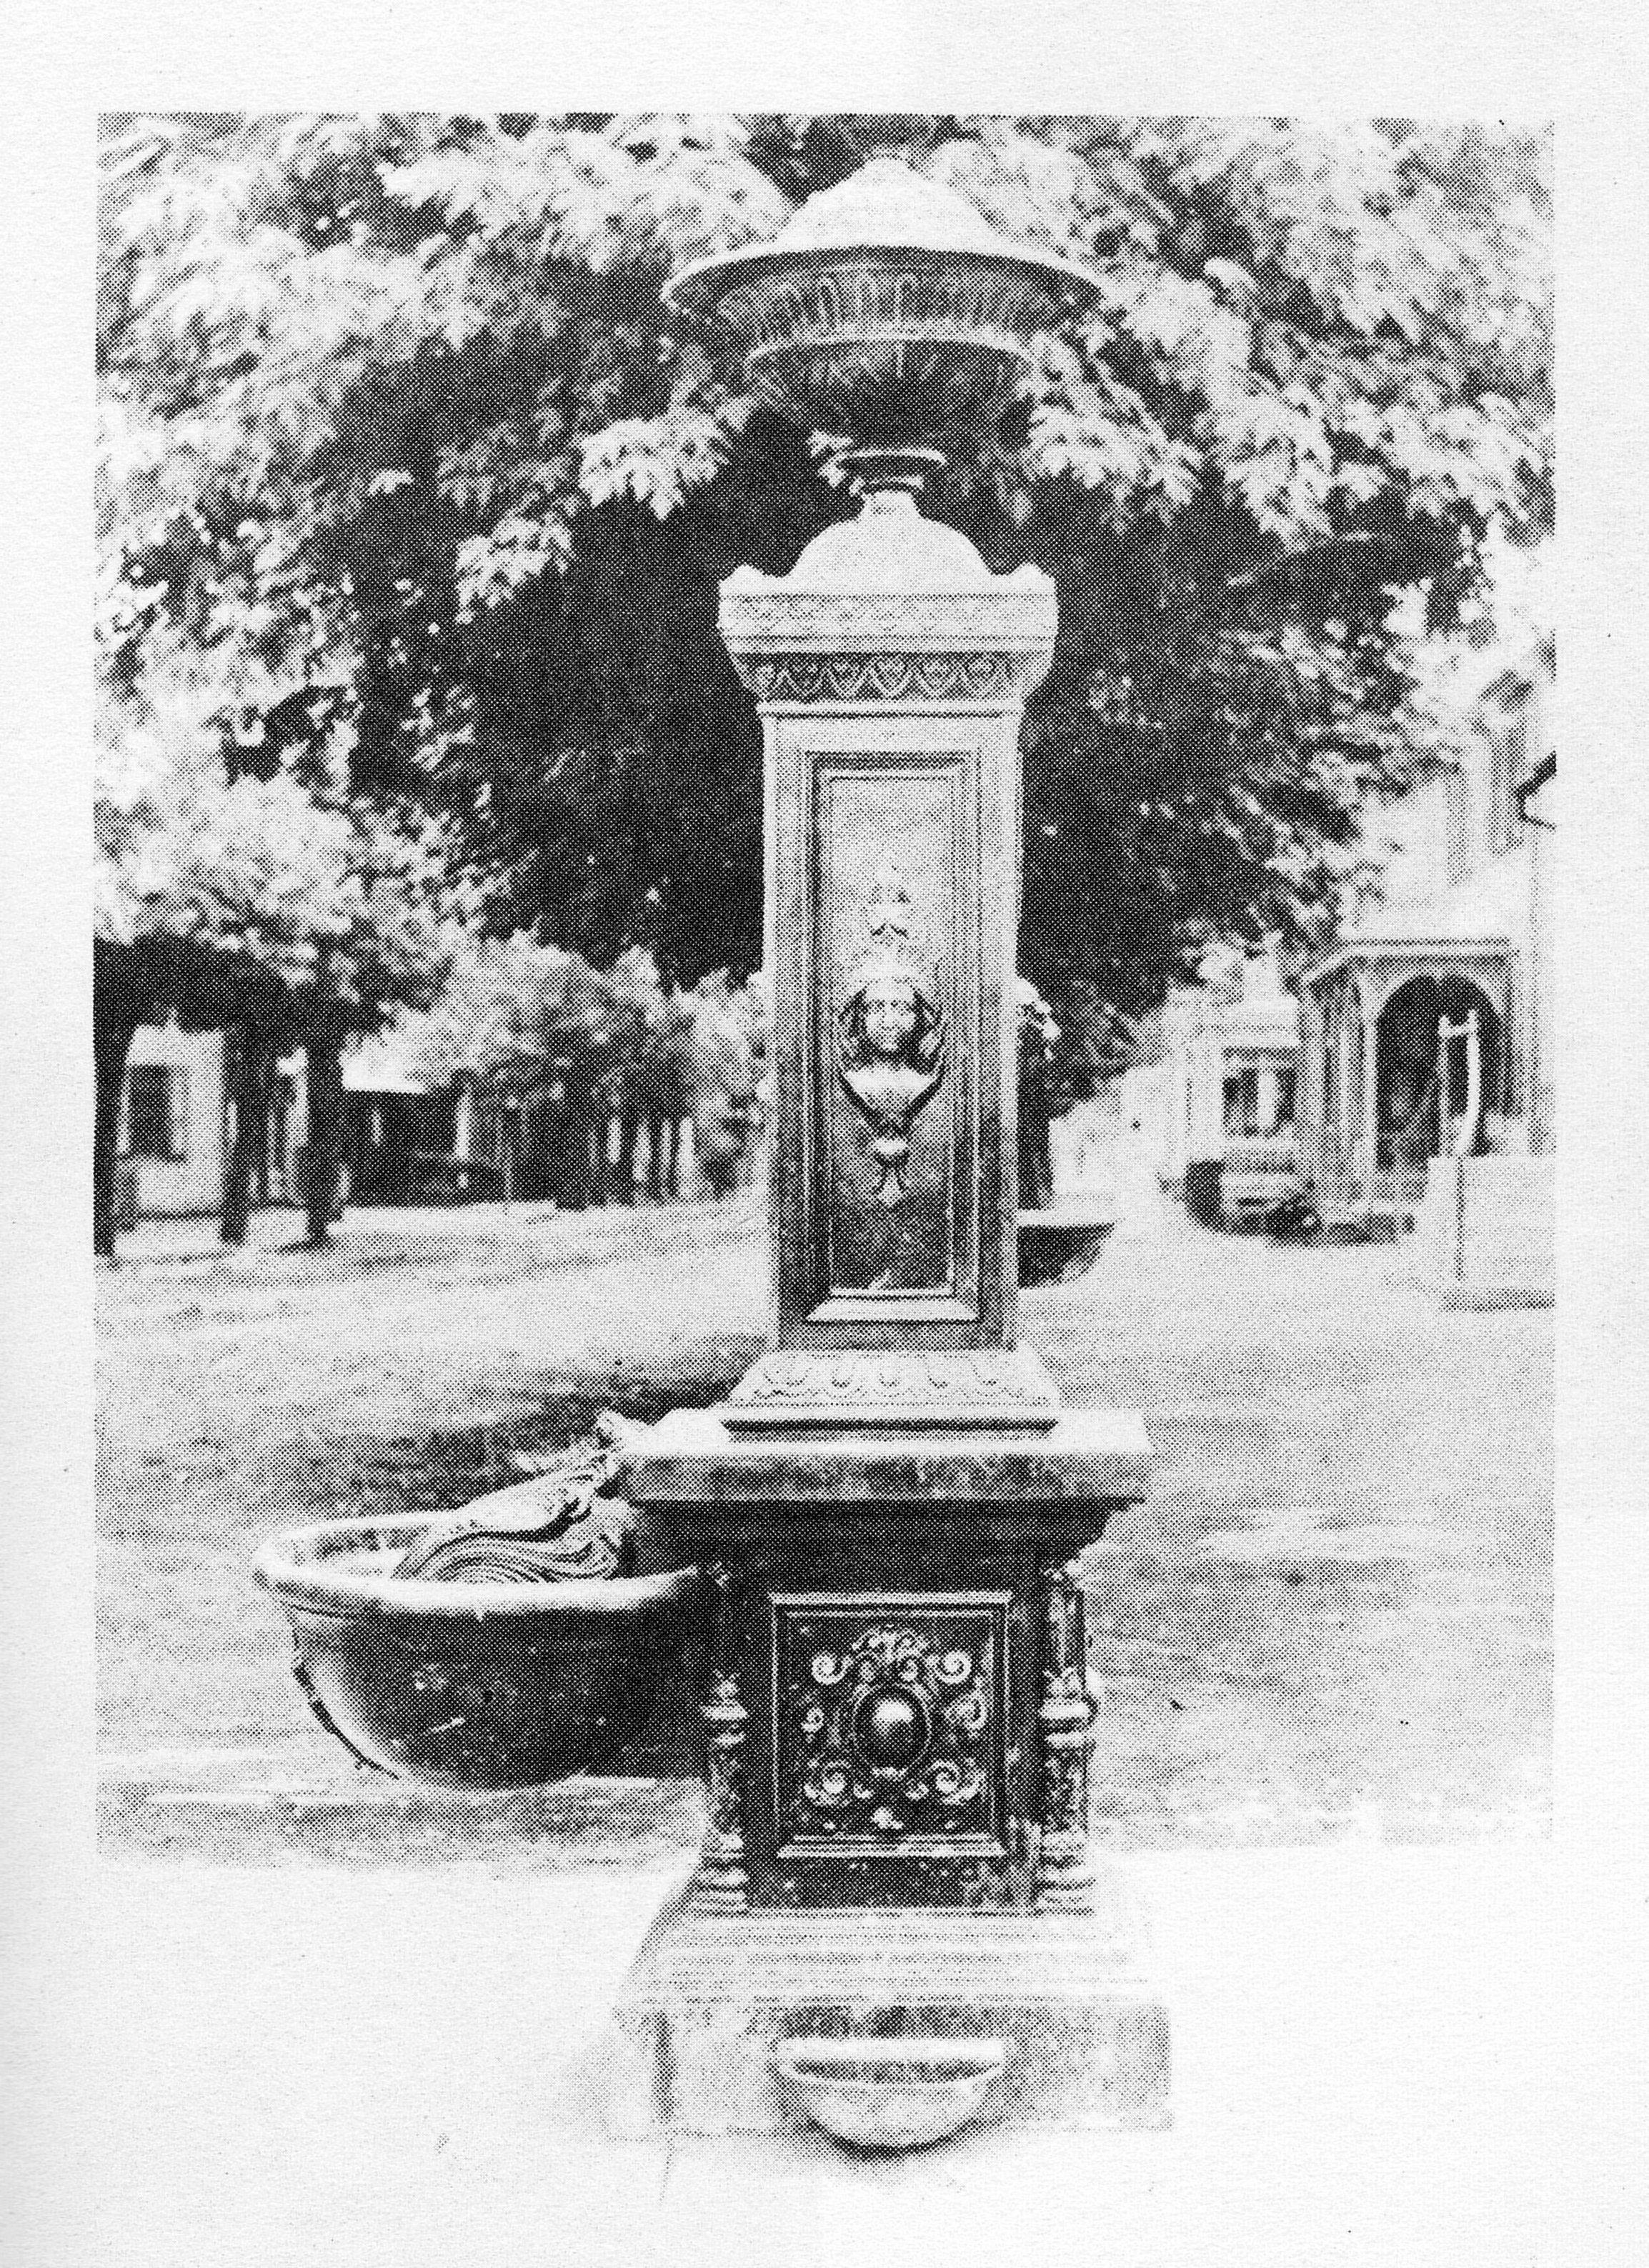 Newville Drinking Fountain, 1790